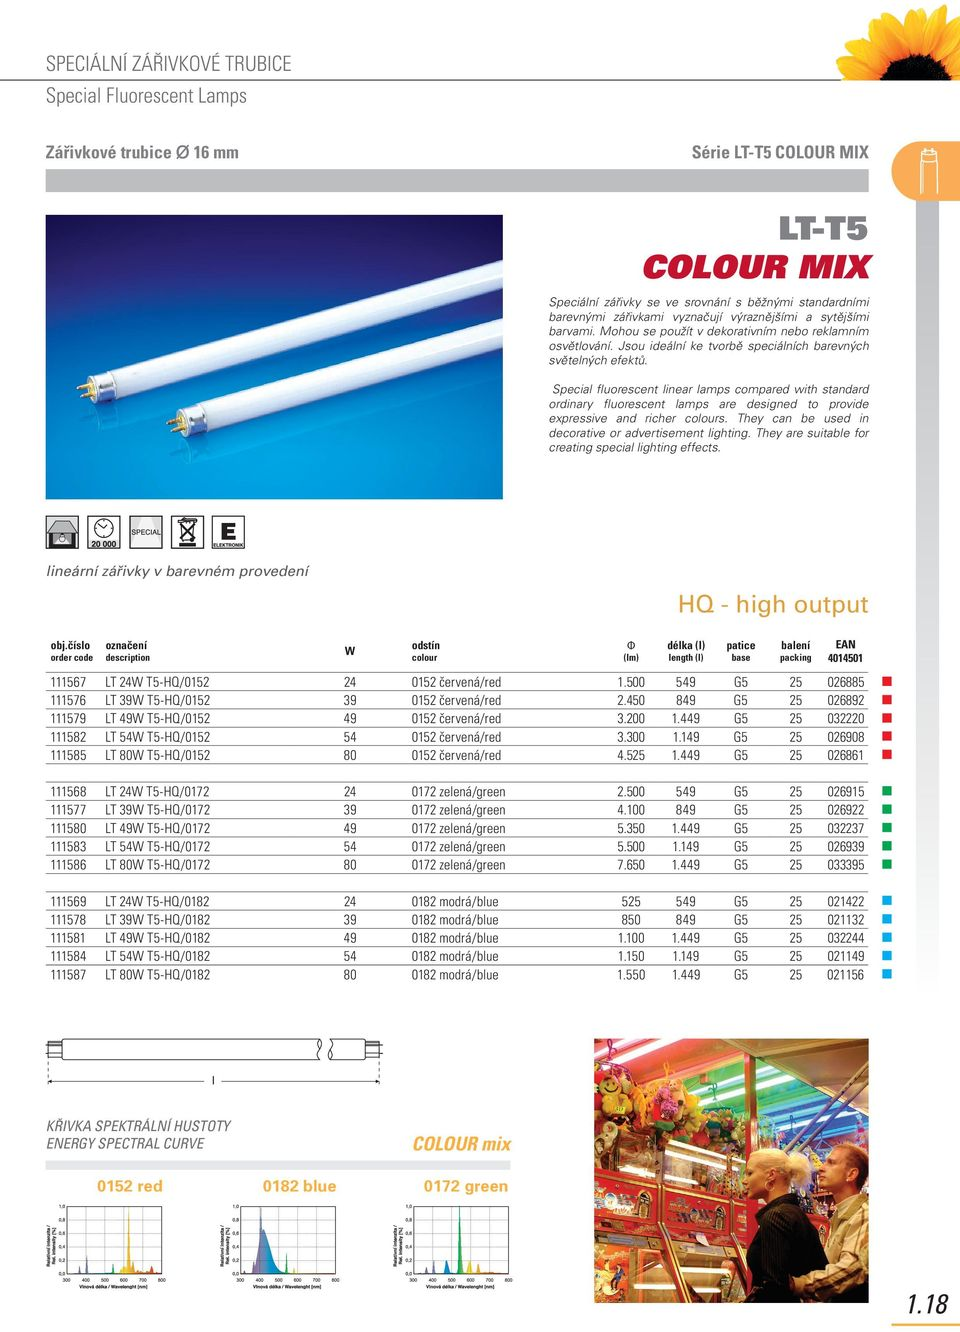 Special fluorescent linear lamps compared with standard ordinary fluorescent lamps are designed to provide expressive and richer s. They can be used in decorative or advertisement lighting.